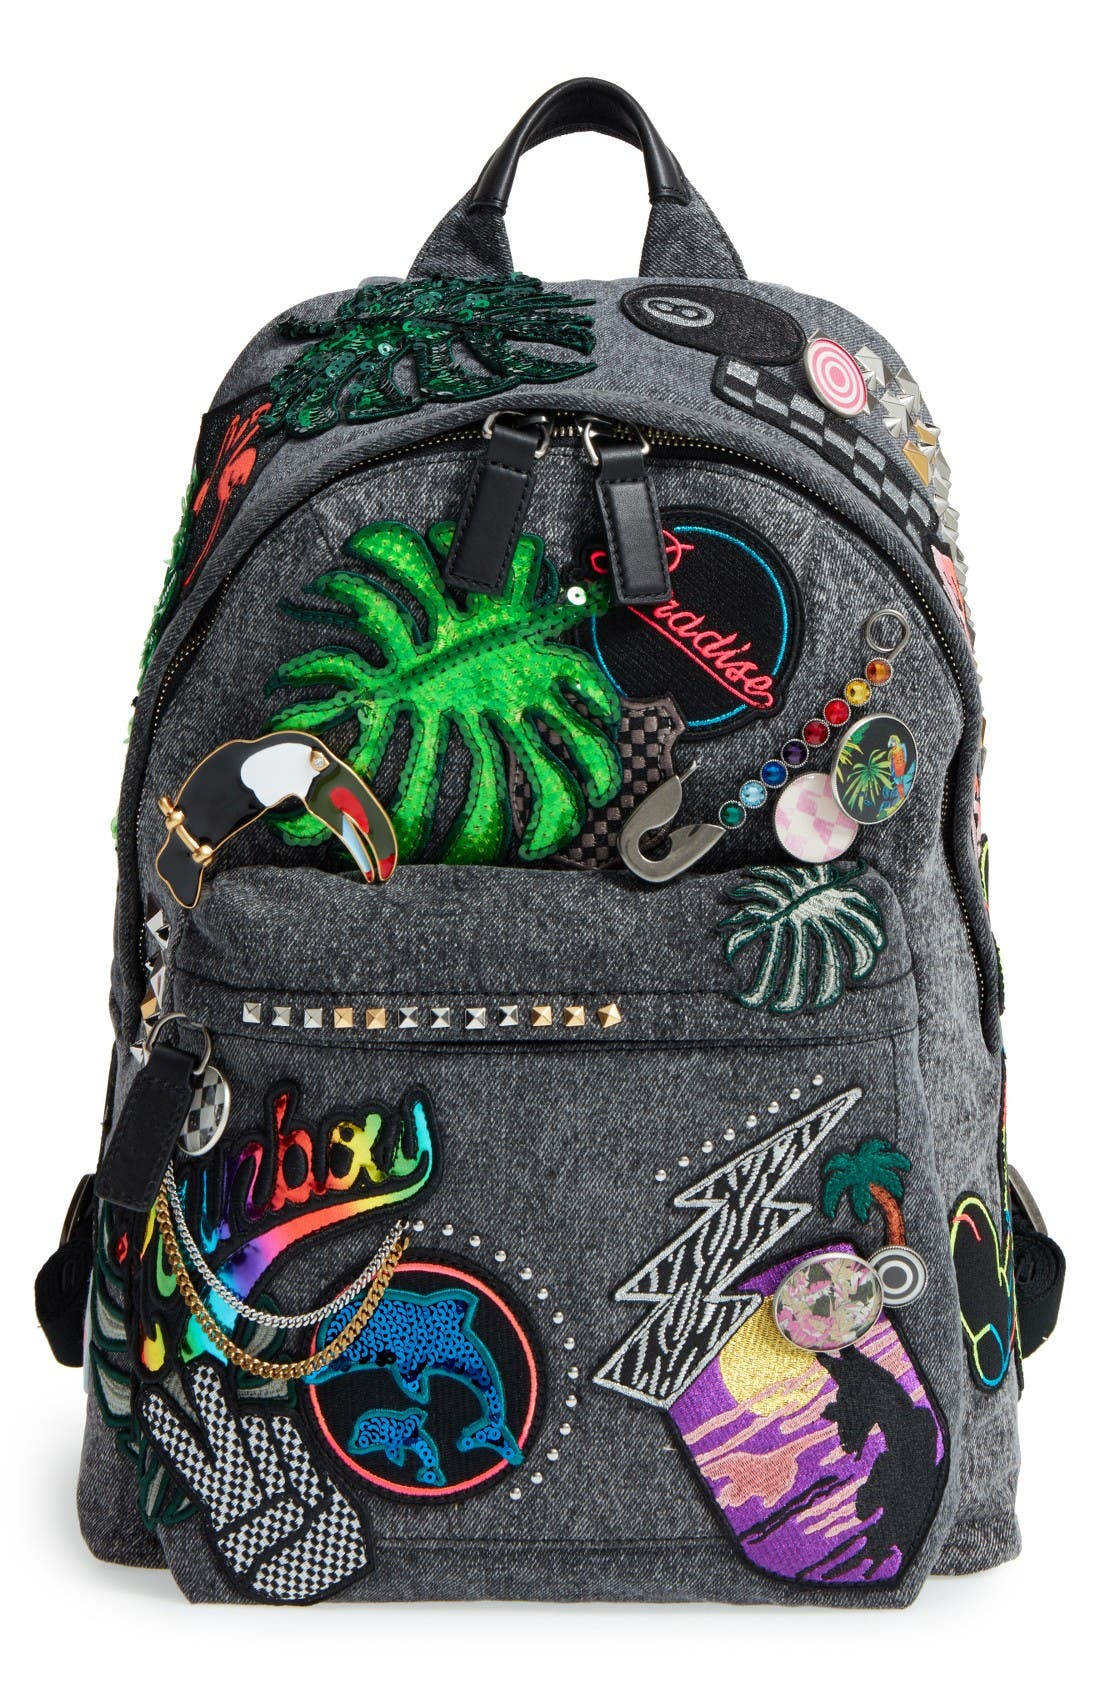 Alternate Image 1 Selected - MARC JACOBS Paradise Biker Backpack